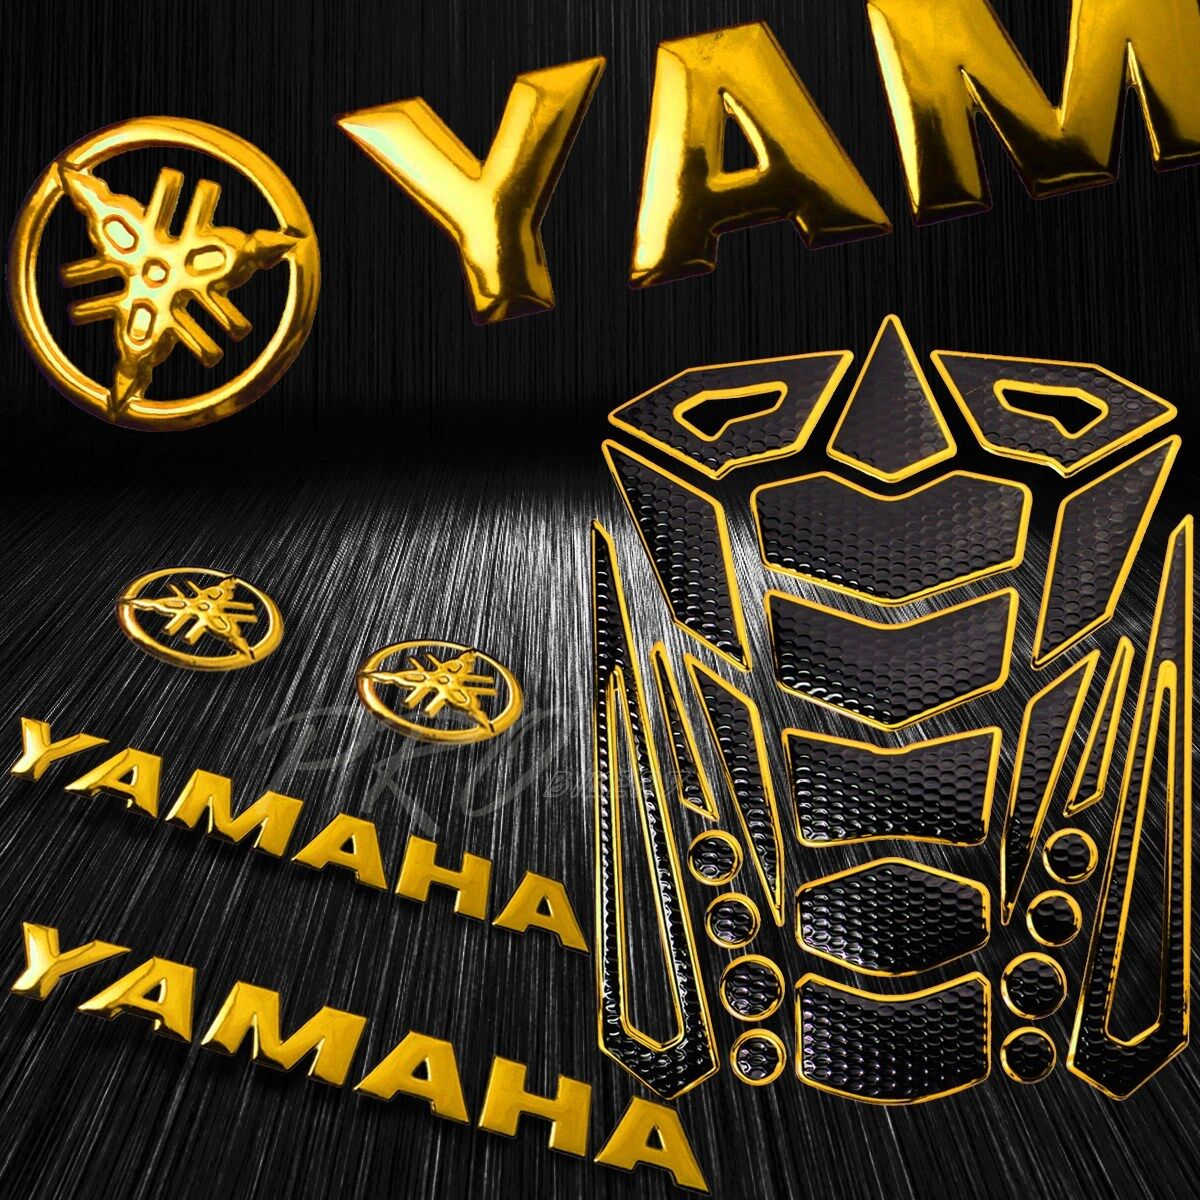 Details about 24pcs chrome gold fuel tank pad 8 for yamaha logo letter fairing emblem sticker